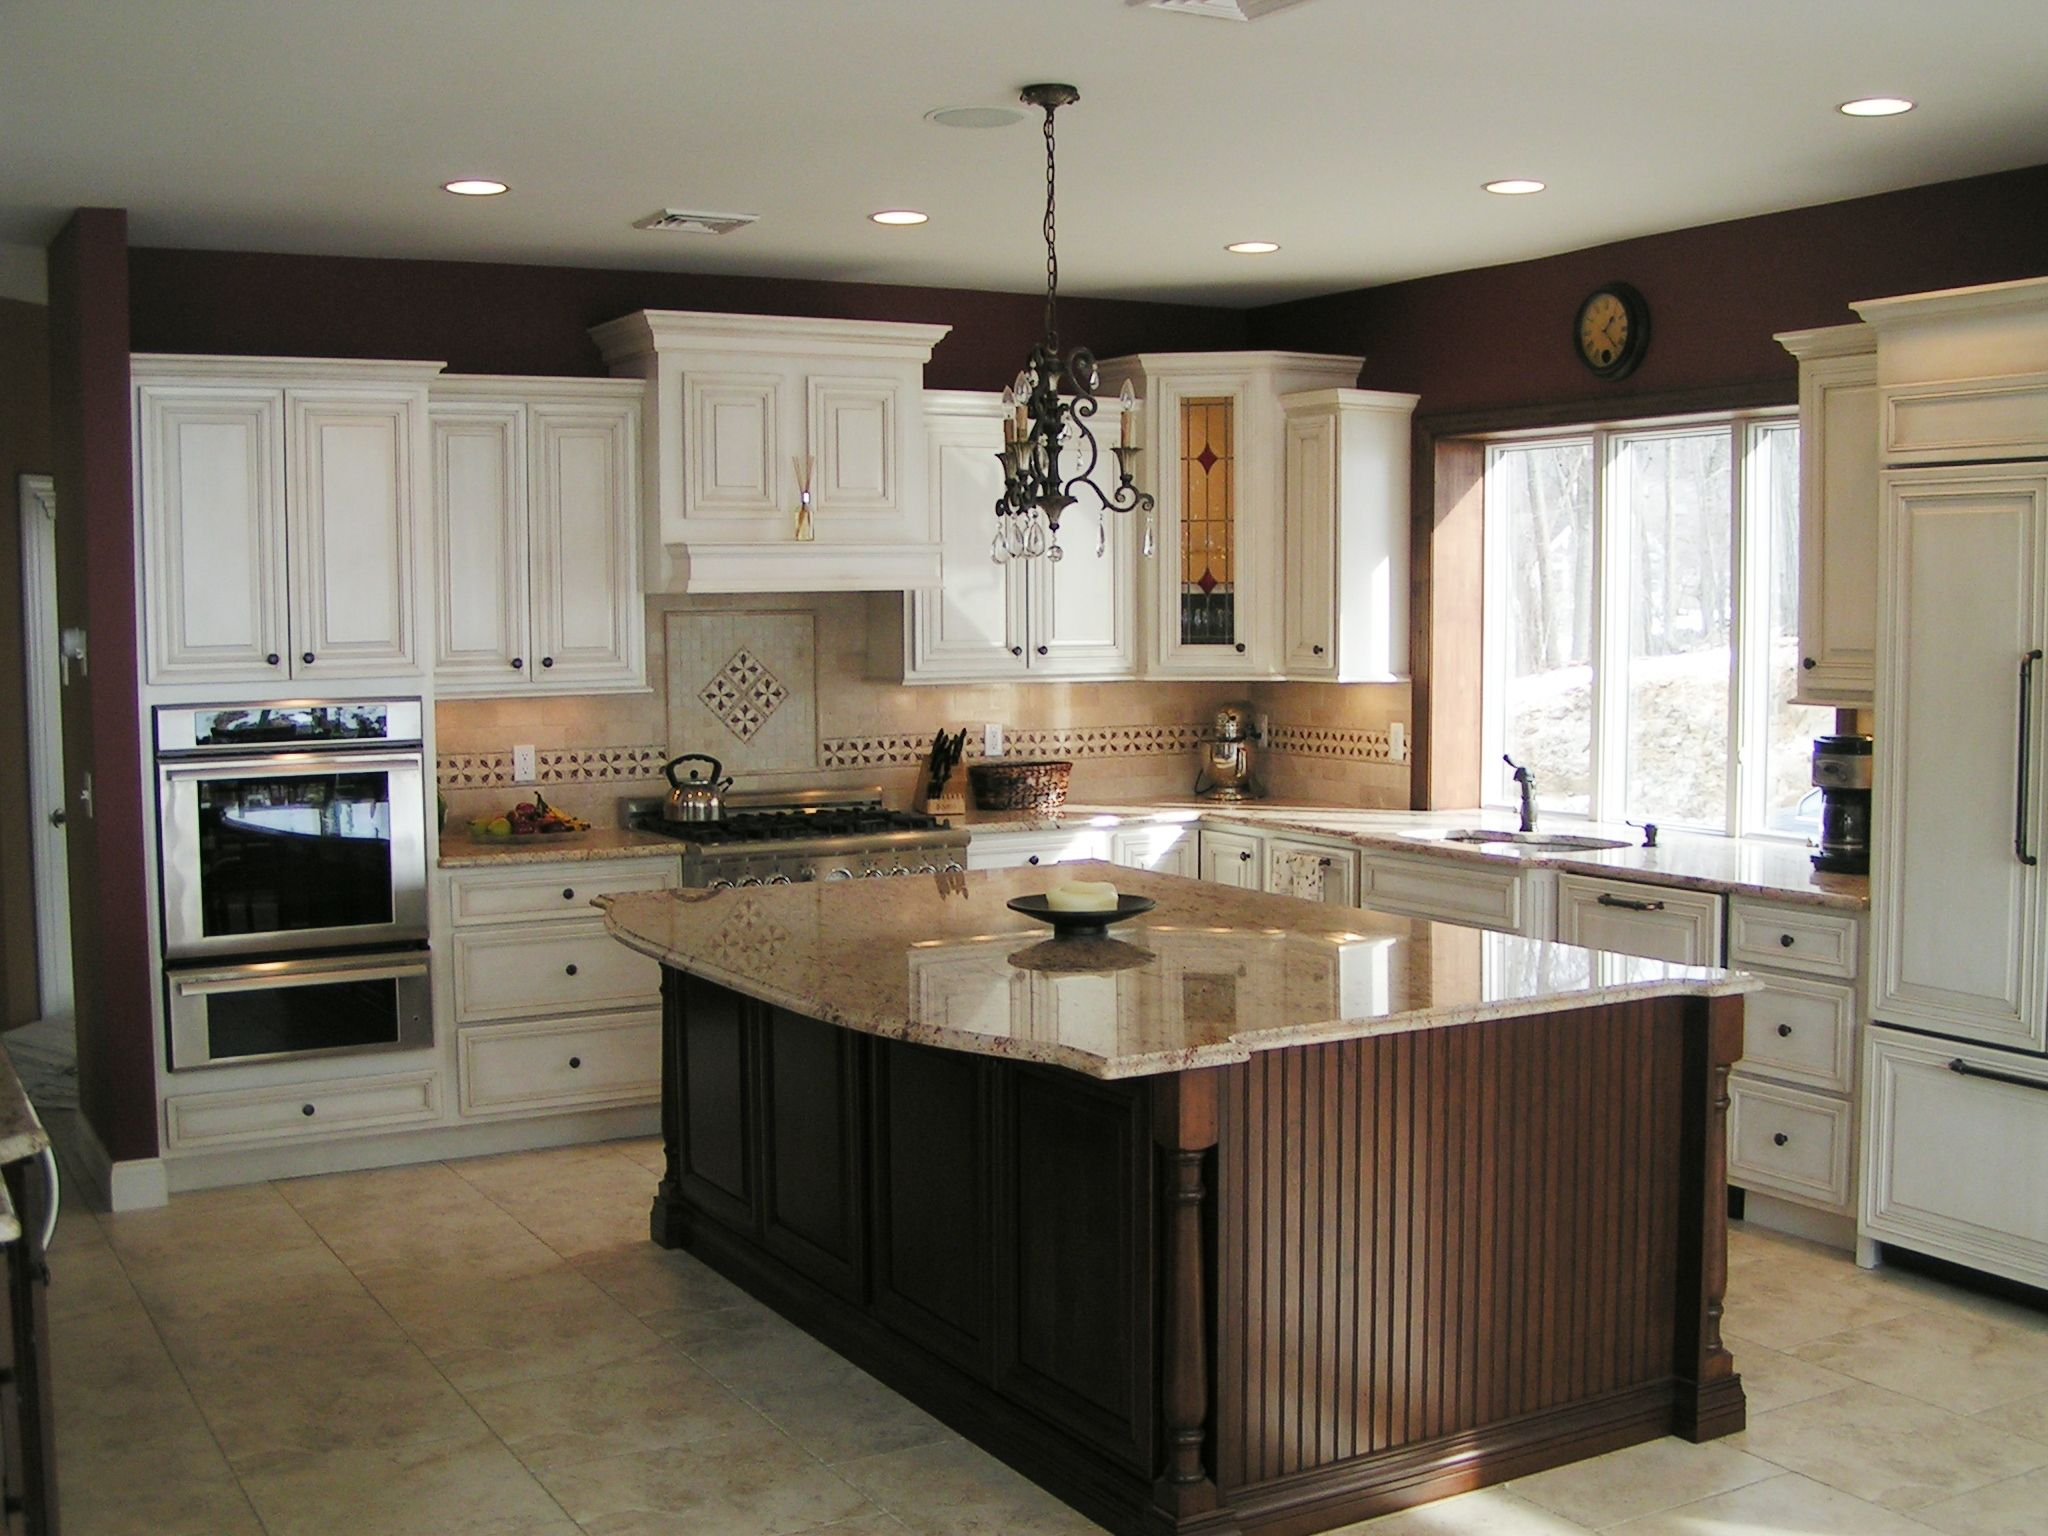 Full kitchen wood species cabinets maple and island for Full kitchen cabinets